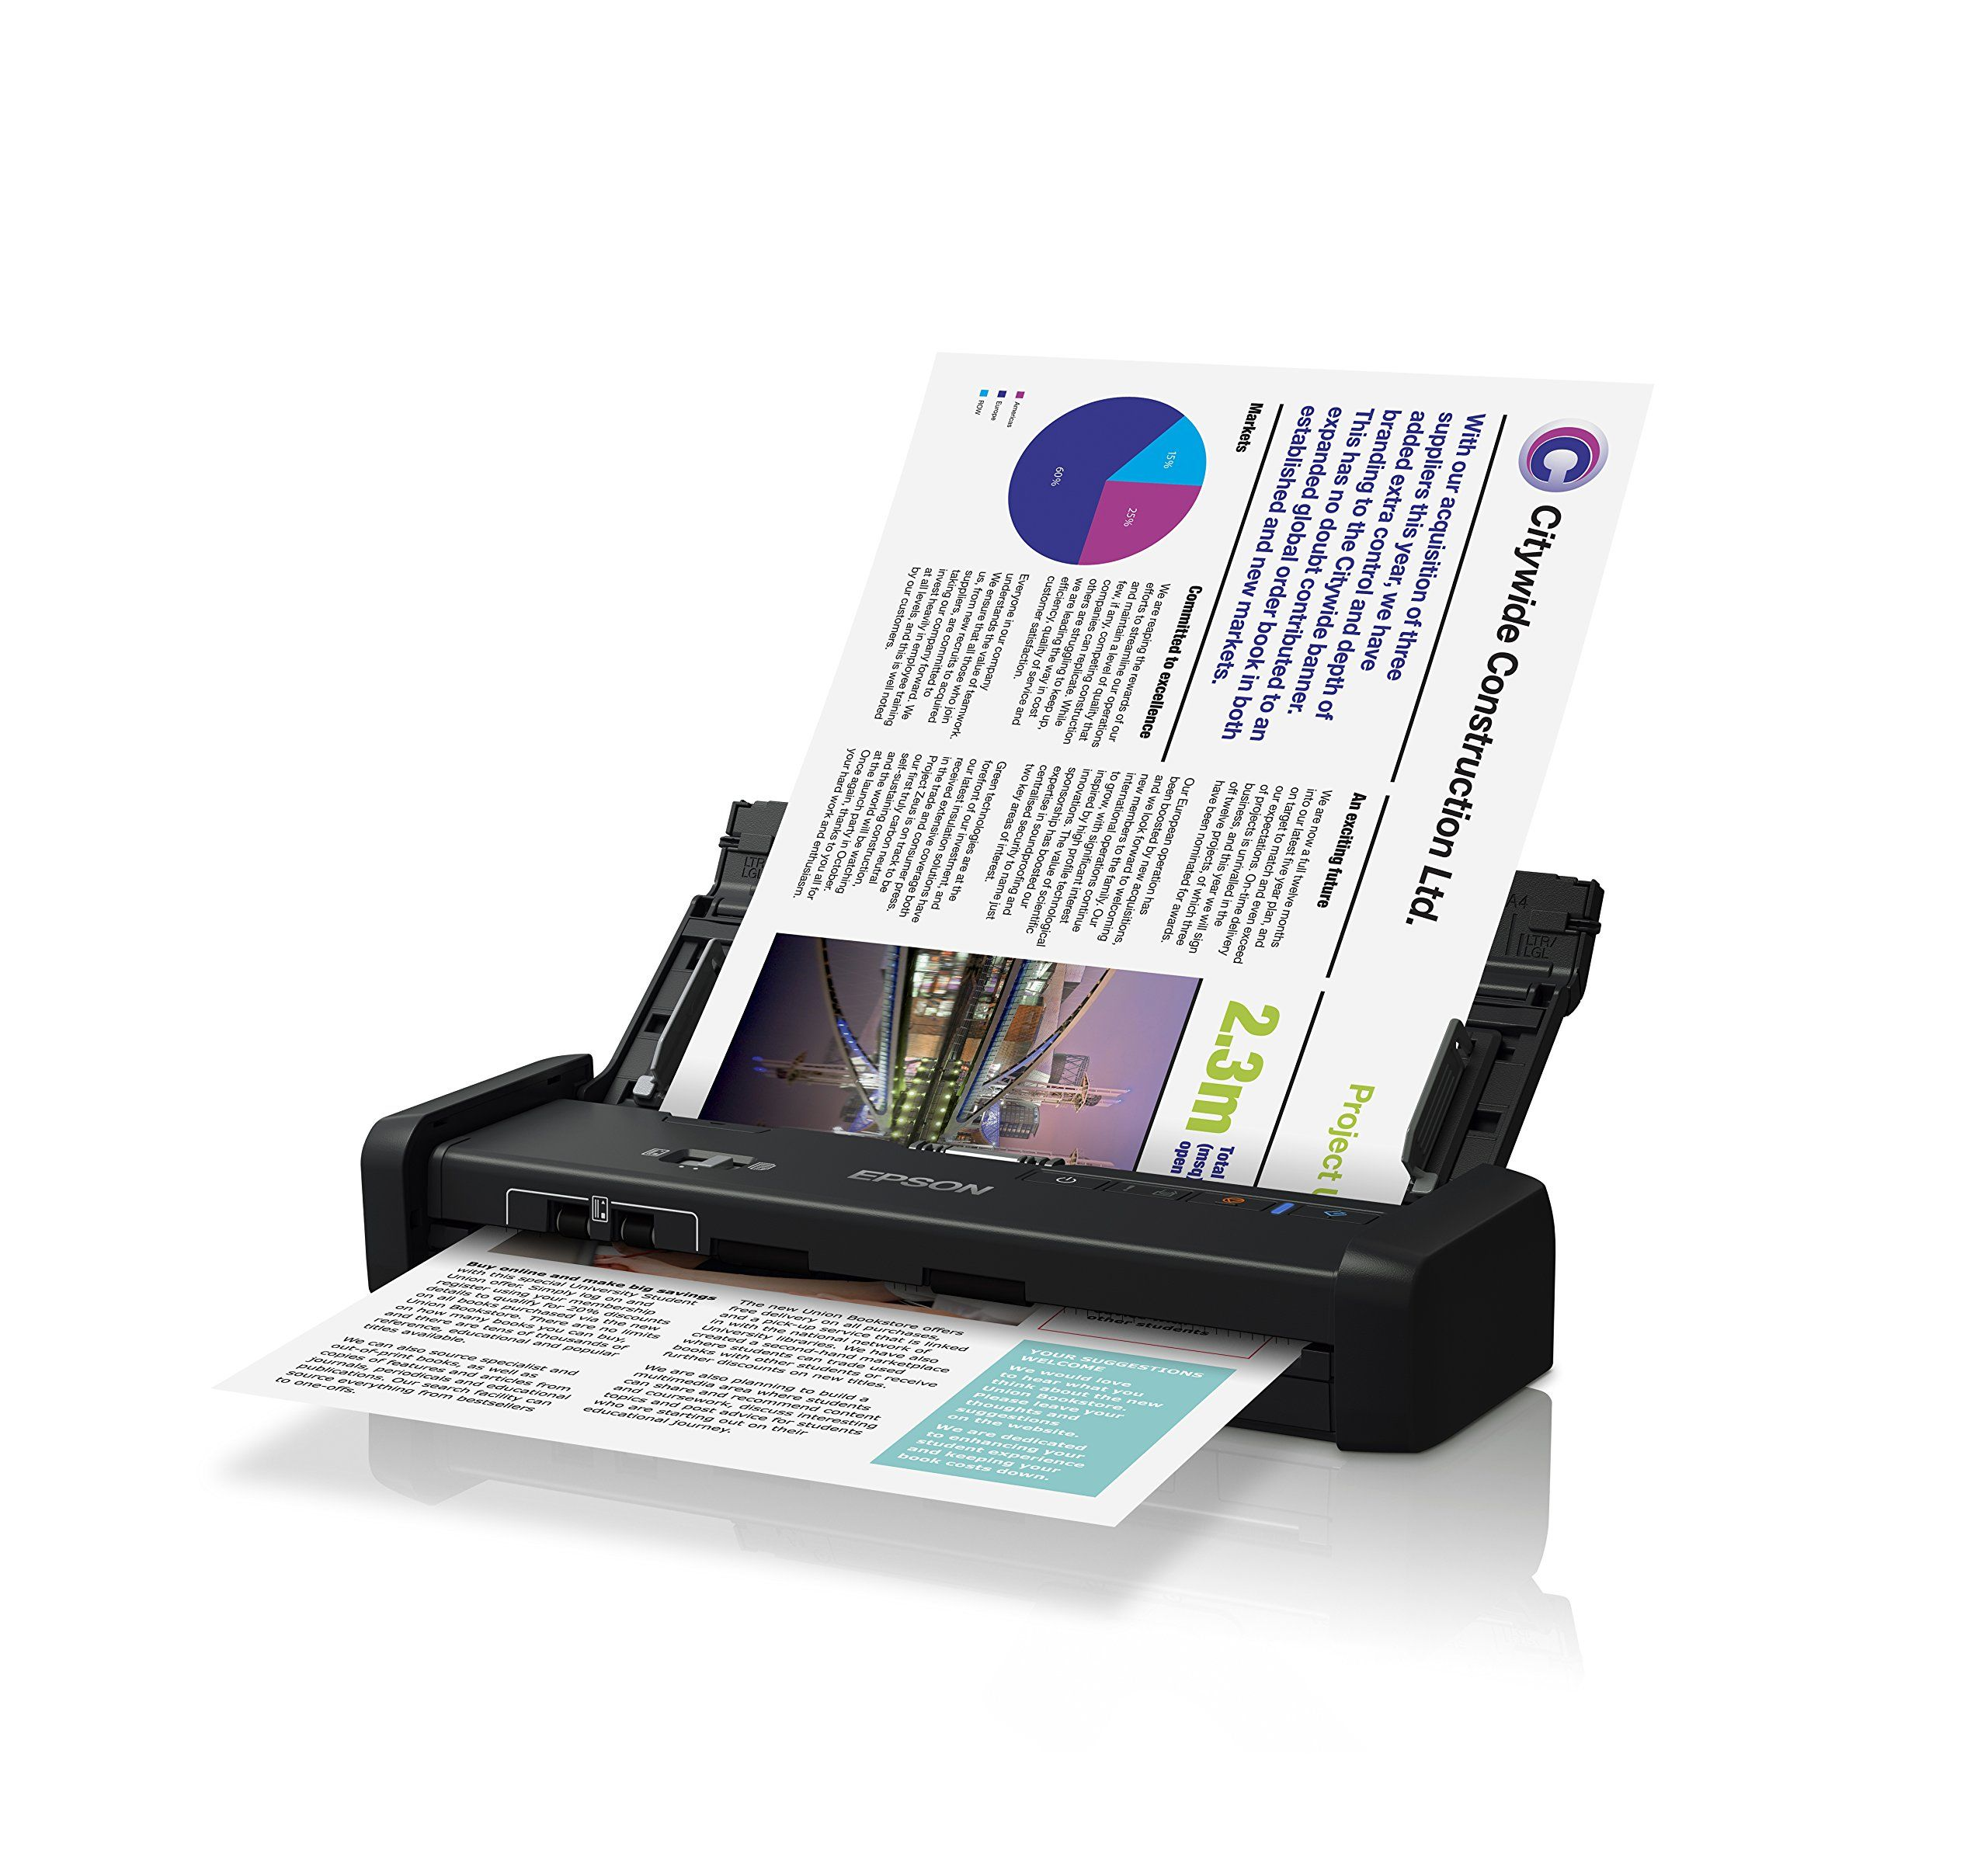 Epson DS-320 Mobile Scanner with ADF: 25ppm, TWAIN & ISIS Drivers ...